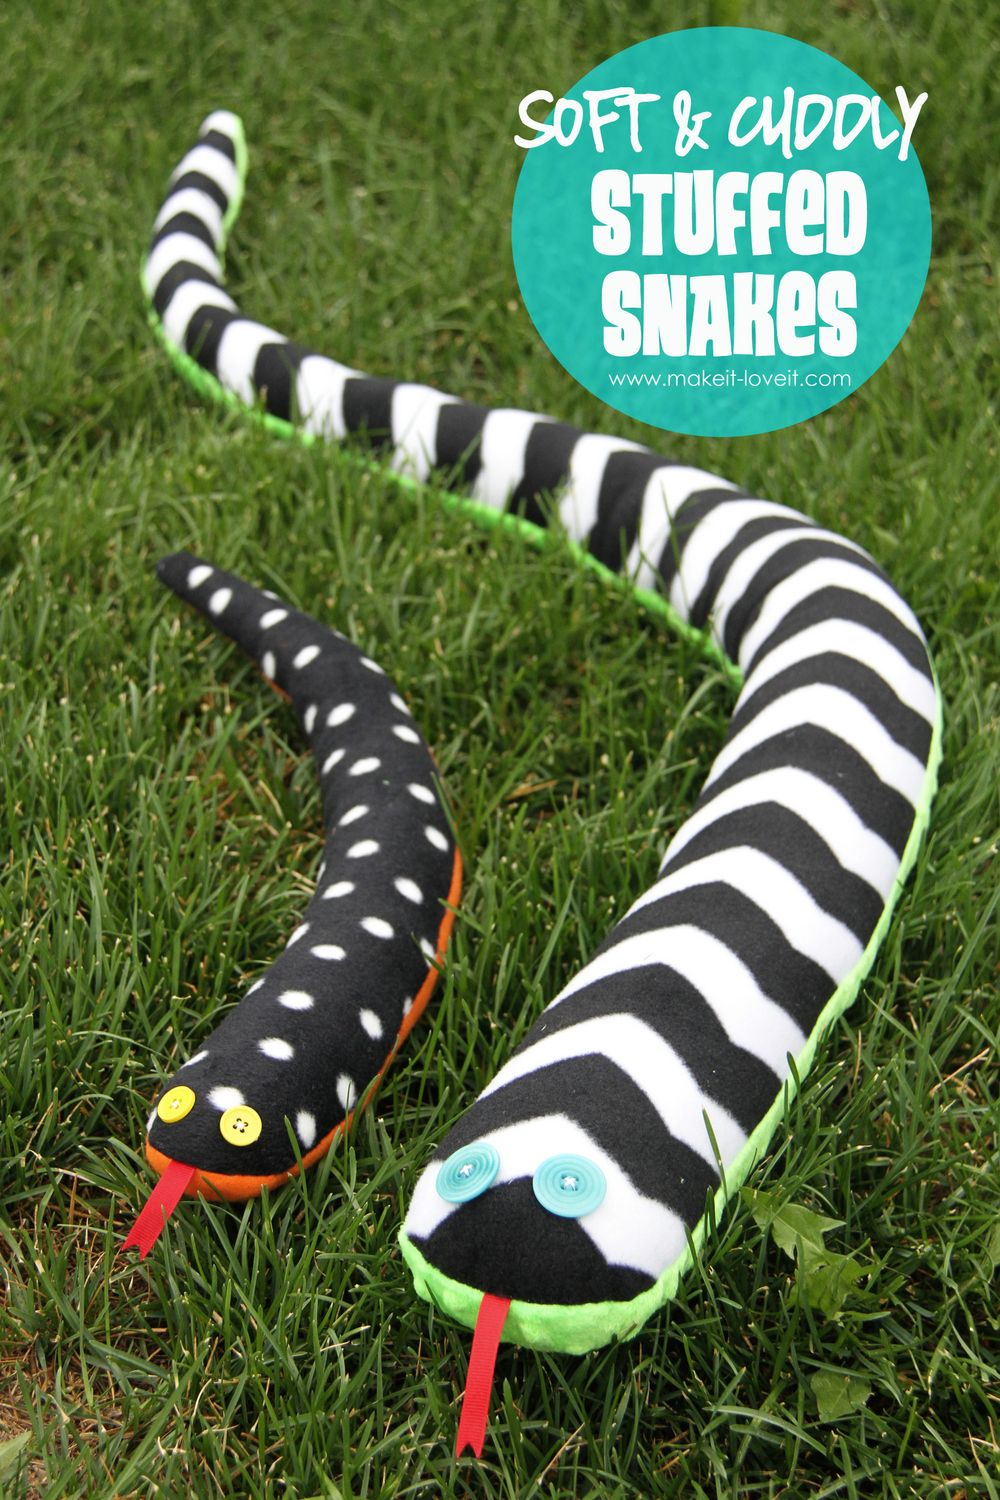 Stuffed Toy Snakes Soft And Cuddly Sewing Stuffed Animals Stuffed Animal Patterns Stuffed Toys Patterns [ 1500 x 1000 Pixel ]